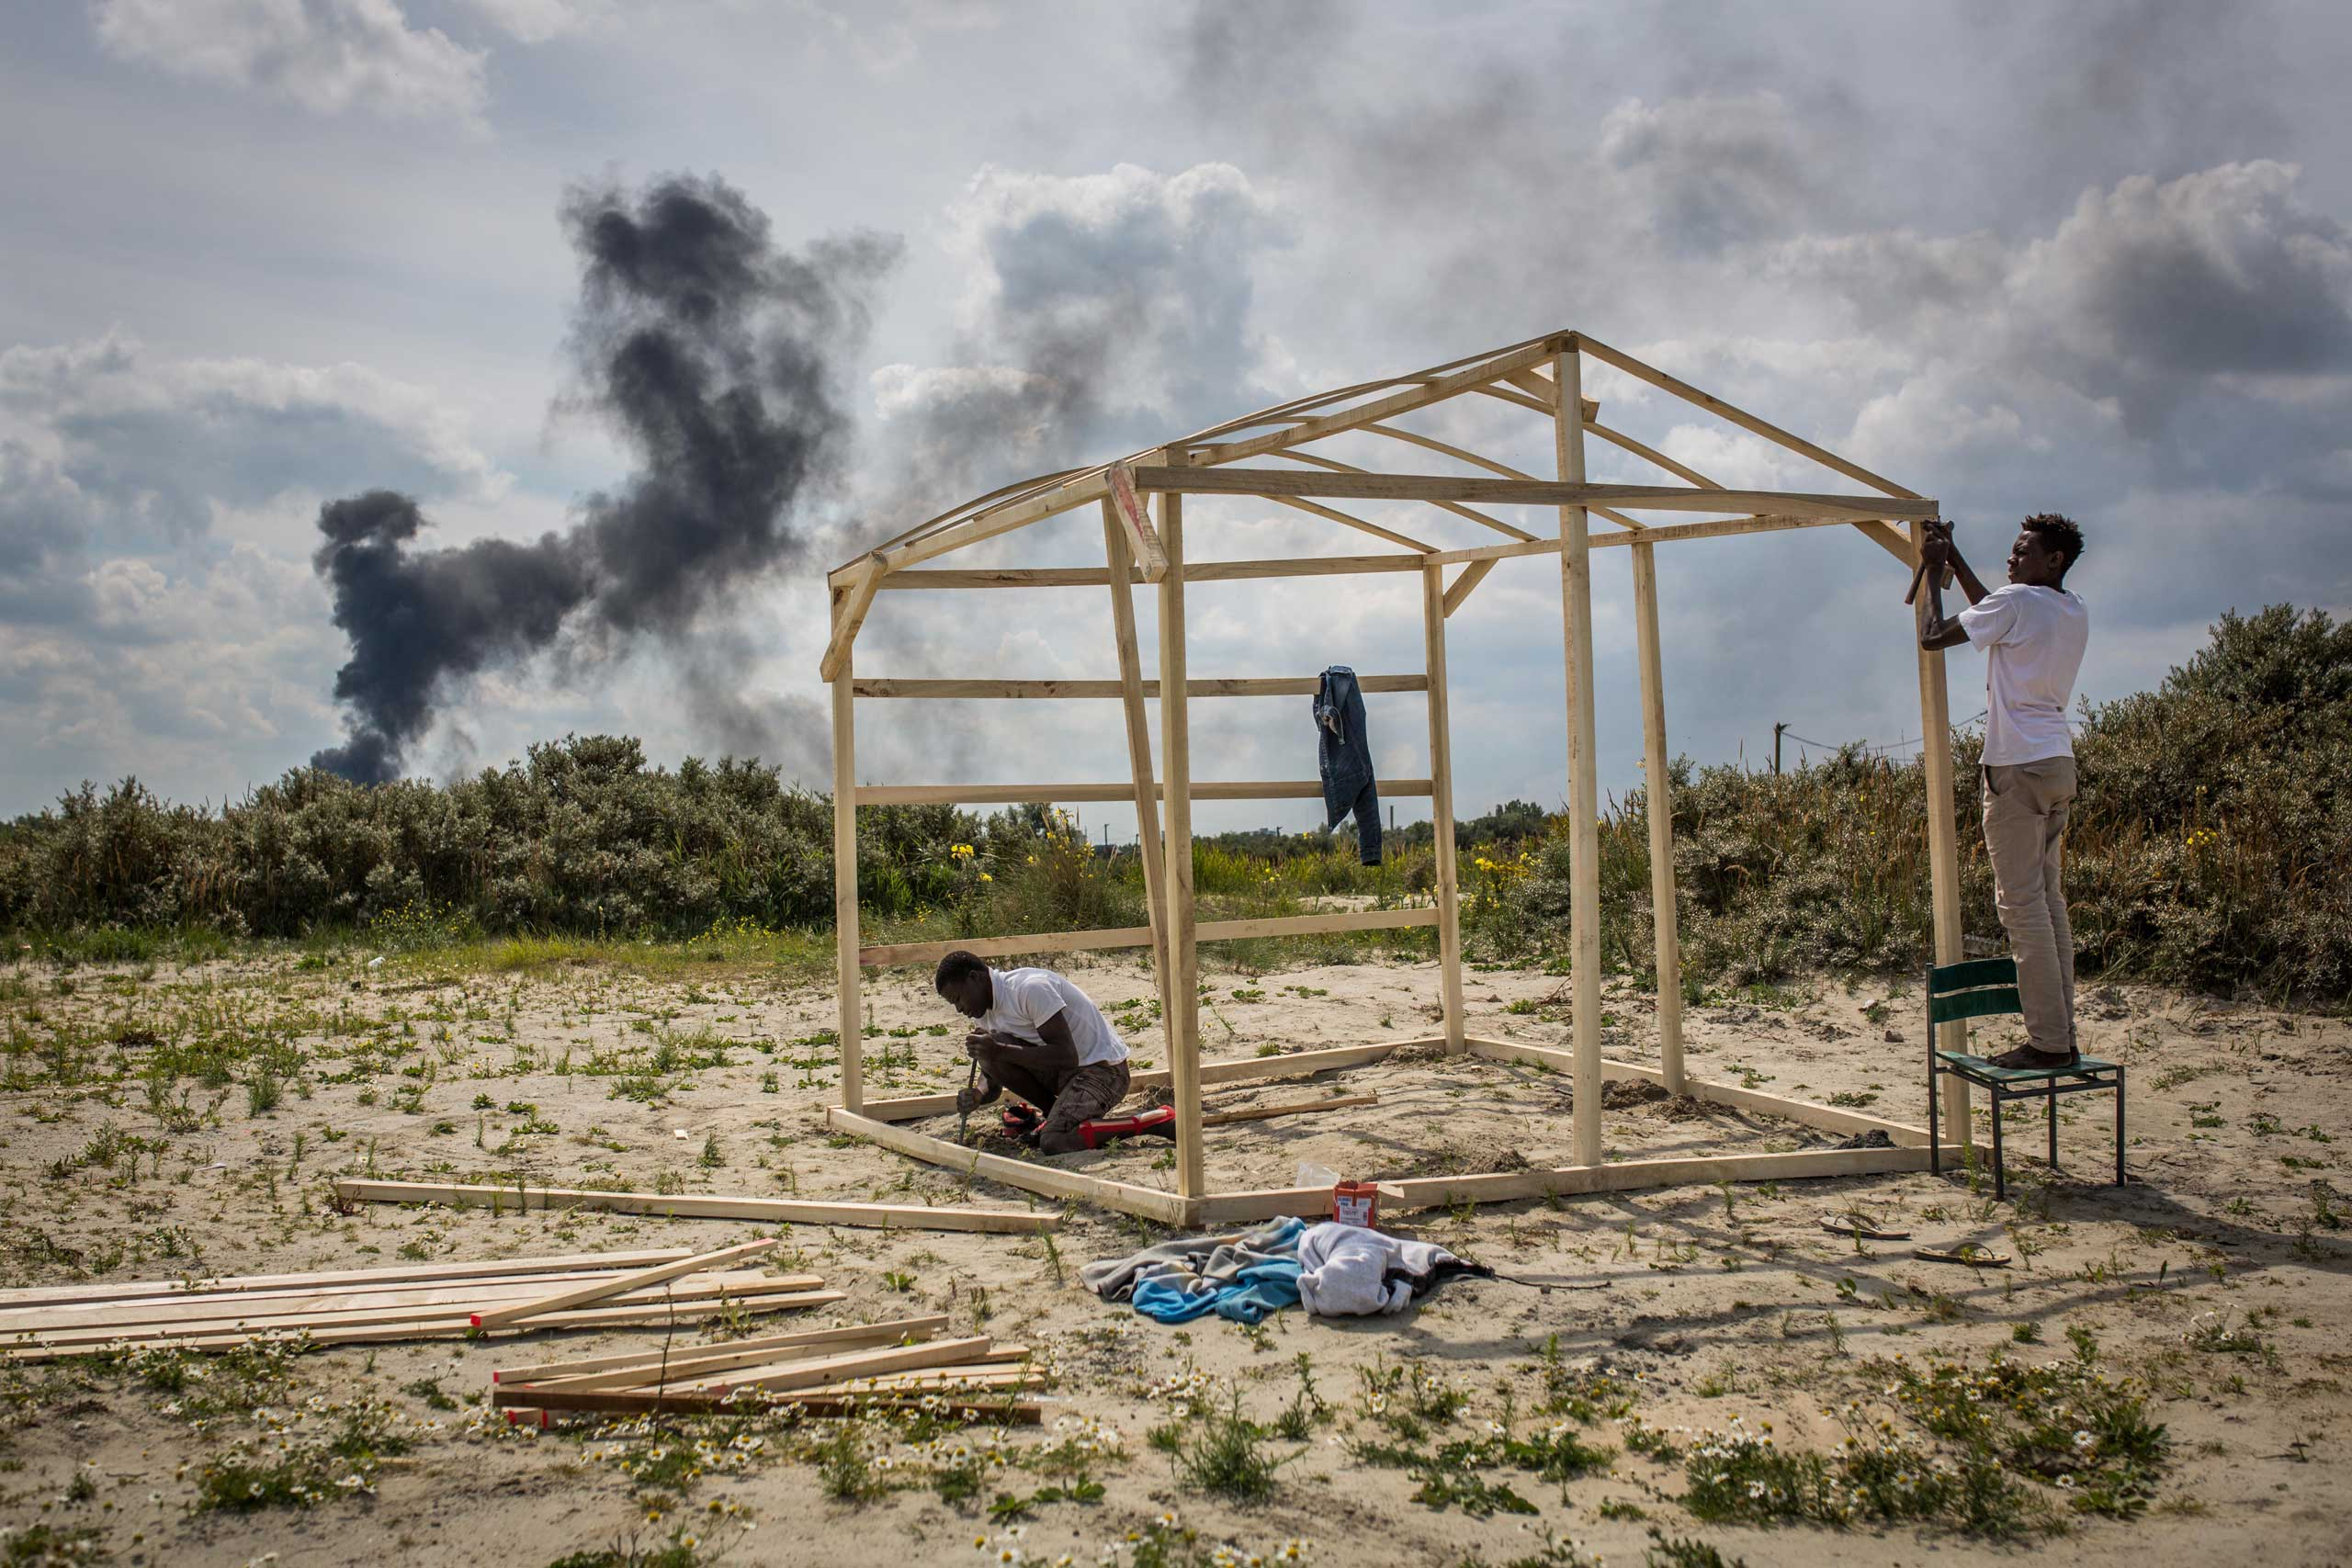 Sudanese men build a wooden structure at a make shift camp near the port of Calais in Calais, France, on July 31, 2015.